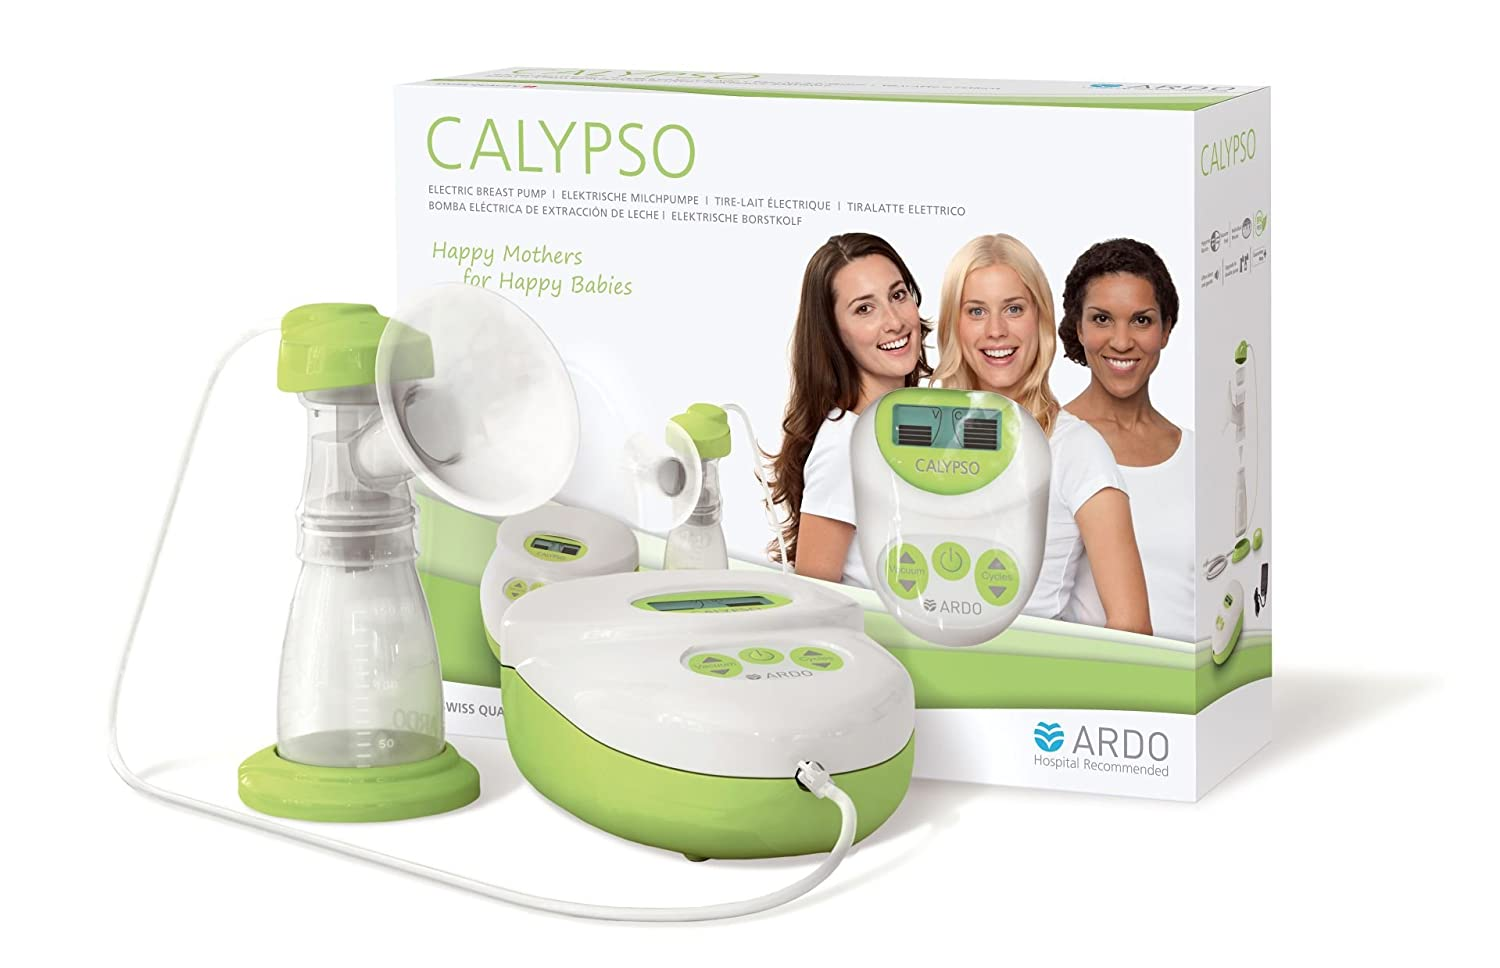 ARDO Calypso Electric Breastpump 63.00.194